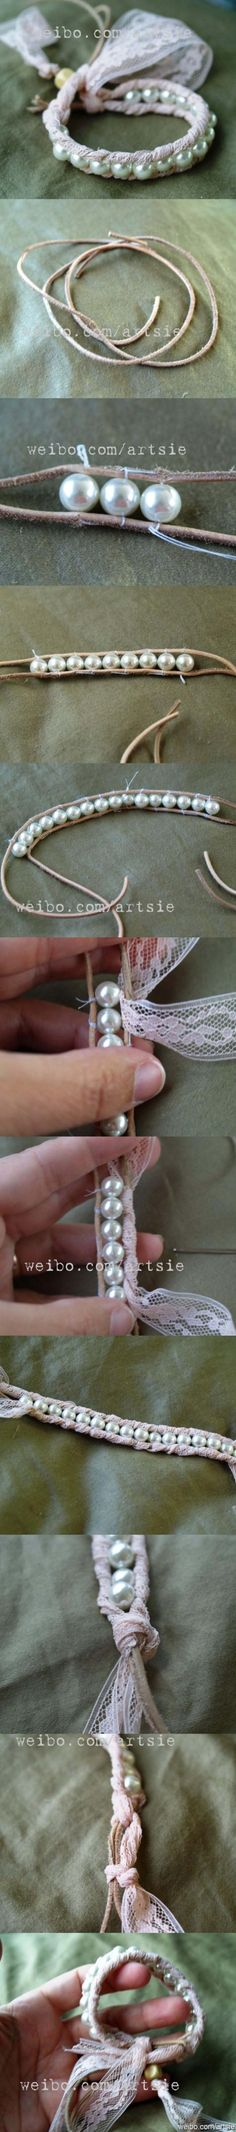 DIY: Lace Bead Bracelet